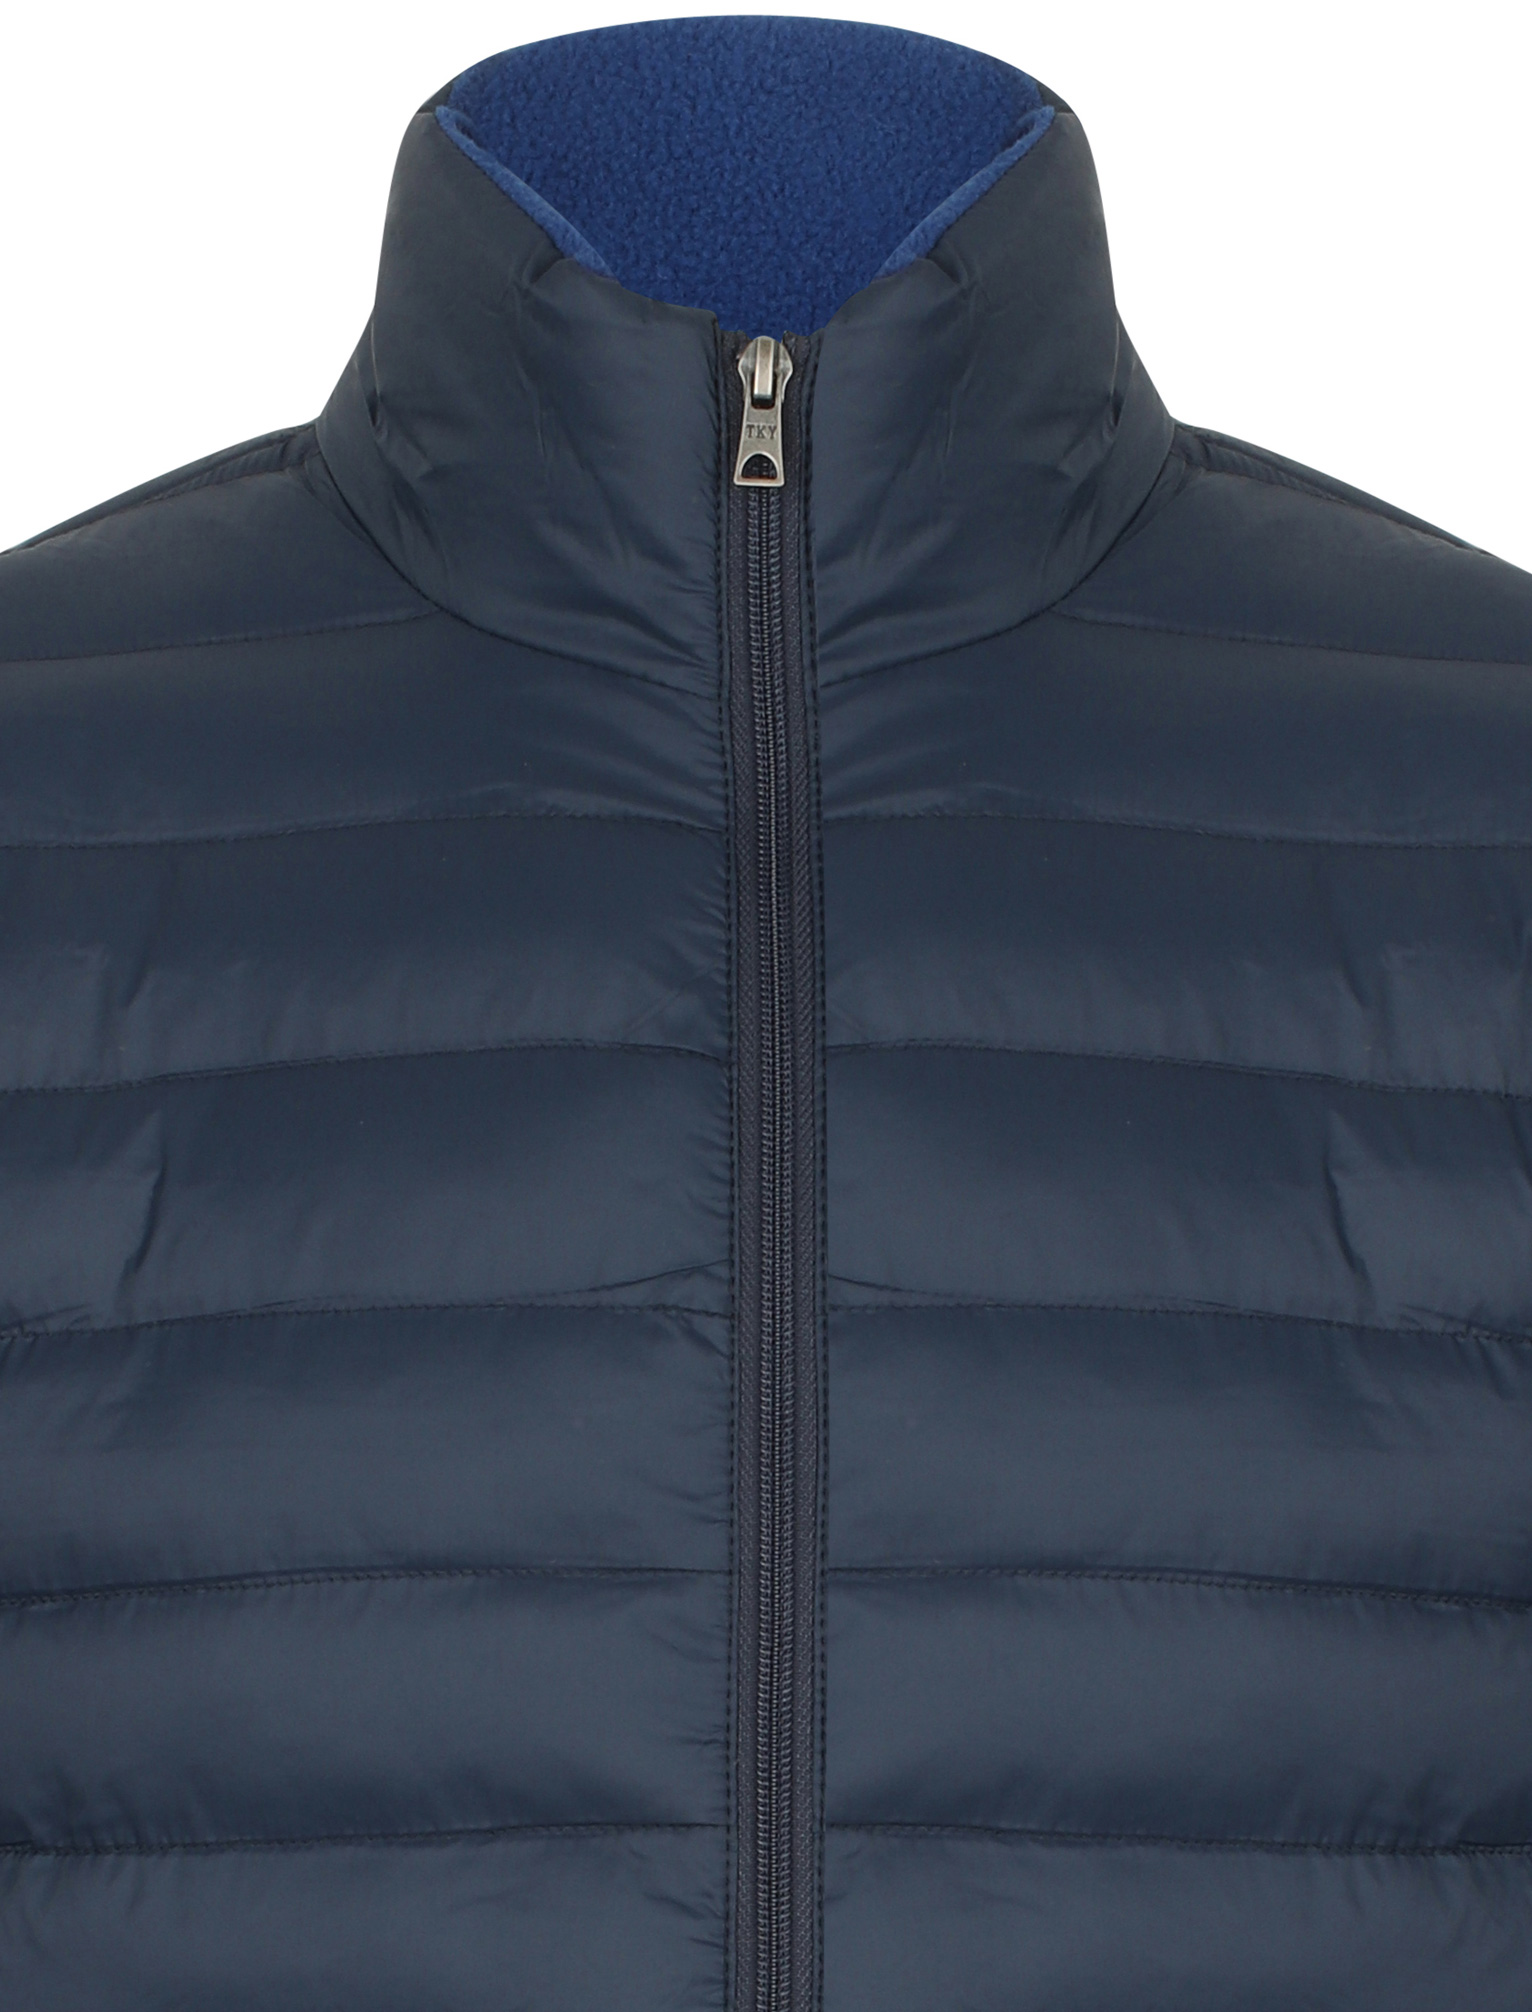 Tokyo-Laundry-Men-039-s-Bakman-Plain-Quilted-Padded-Puffer-Bubble-Jacket thumbnail 11